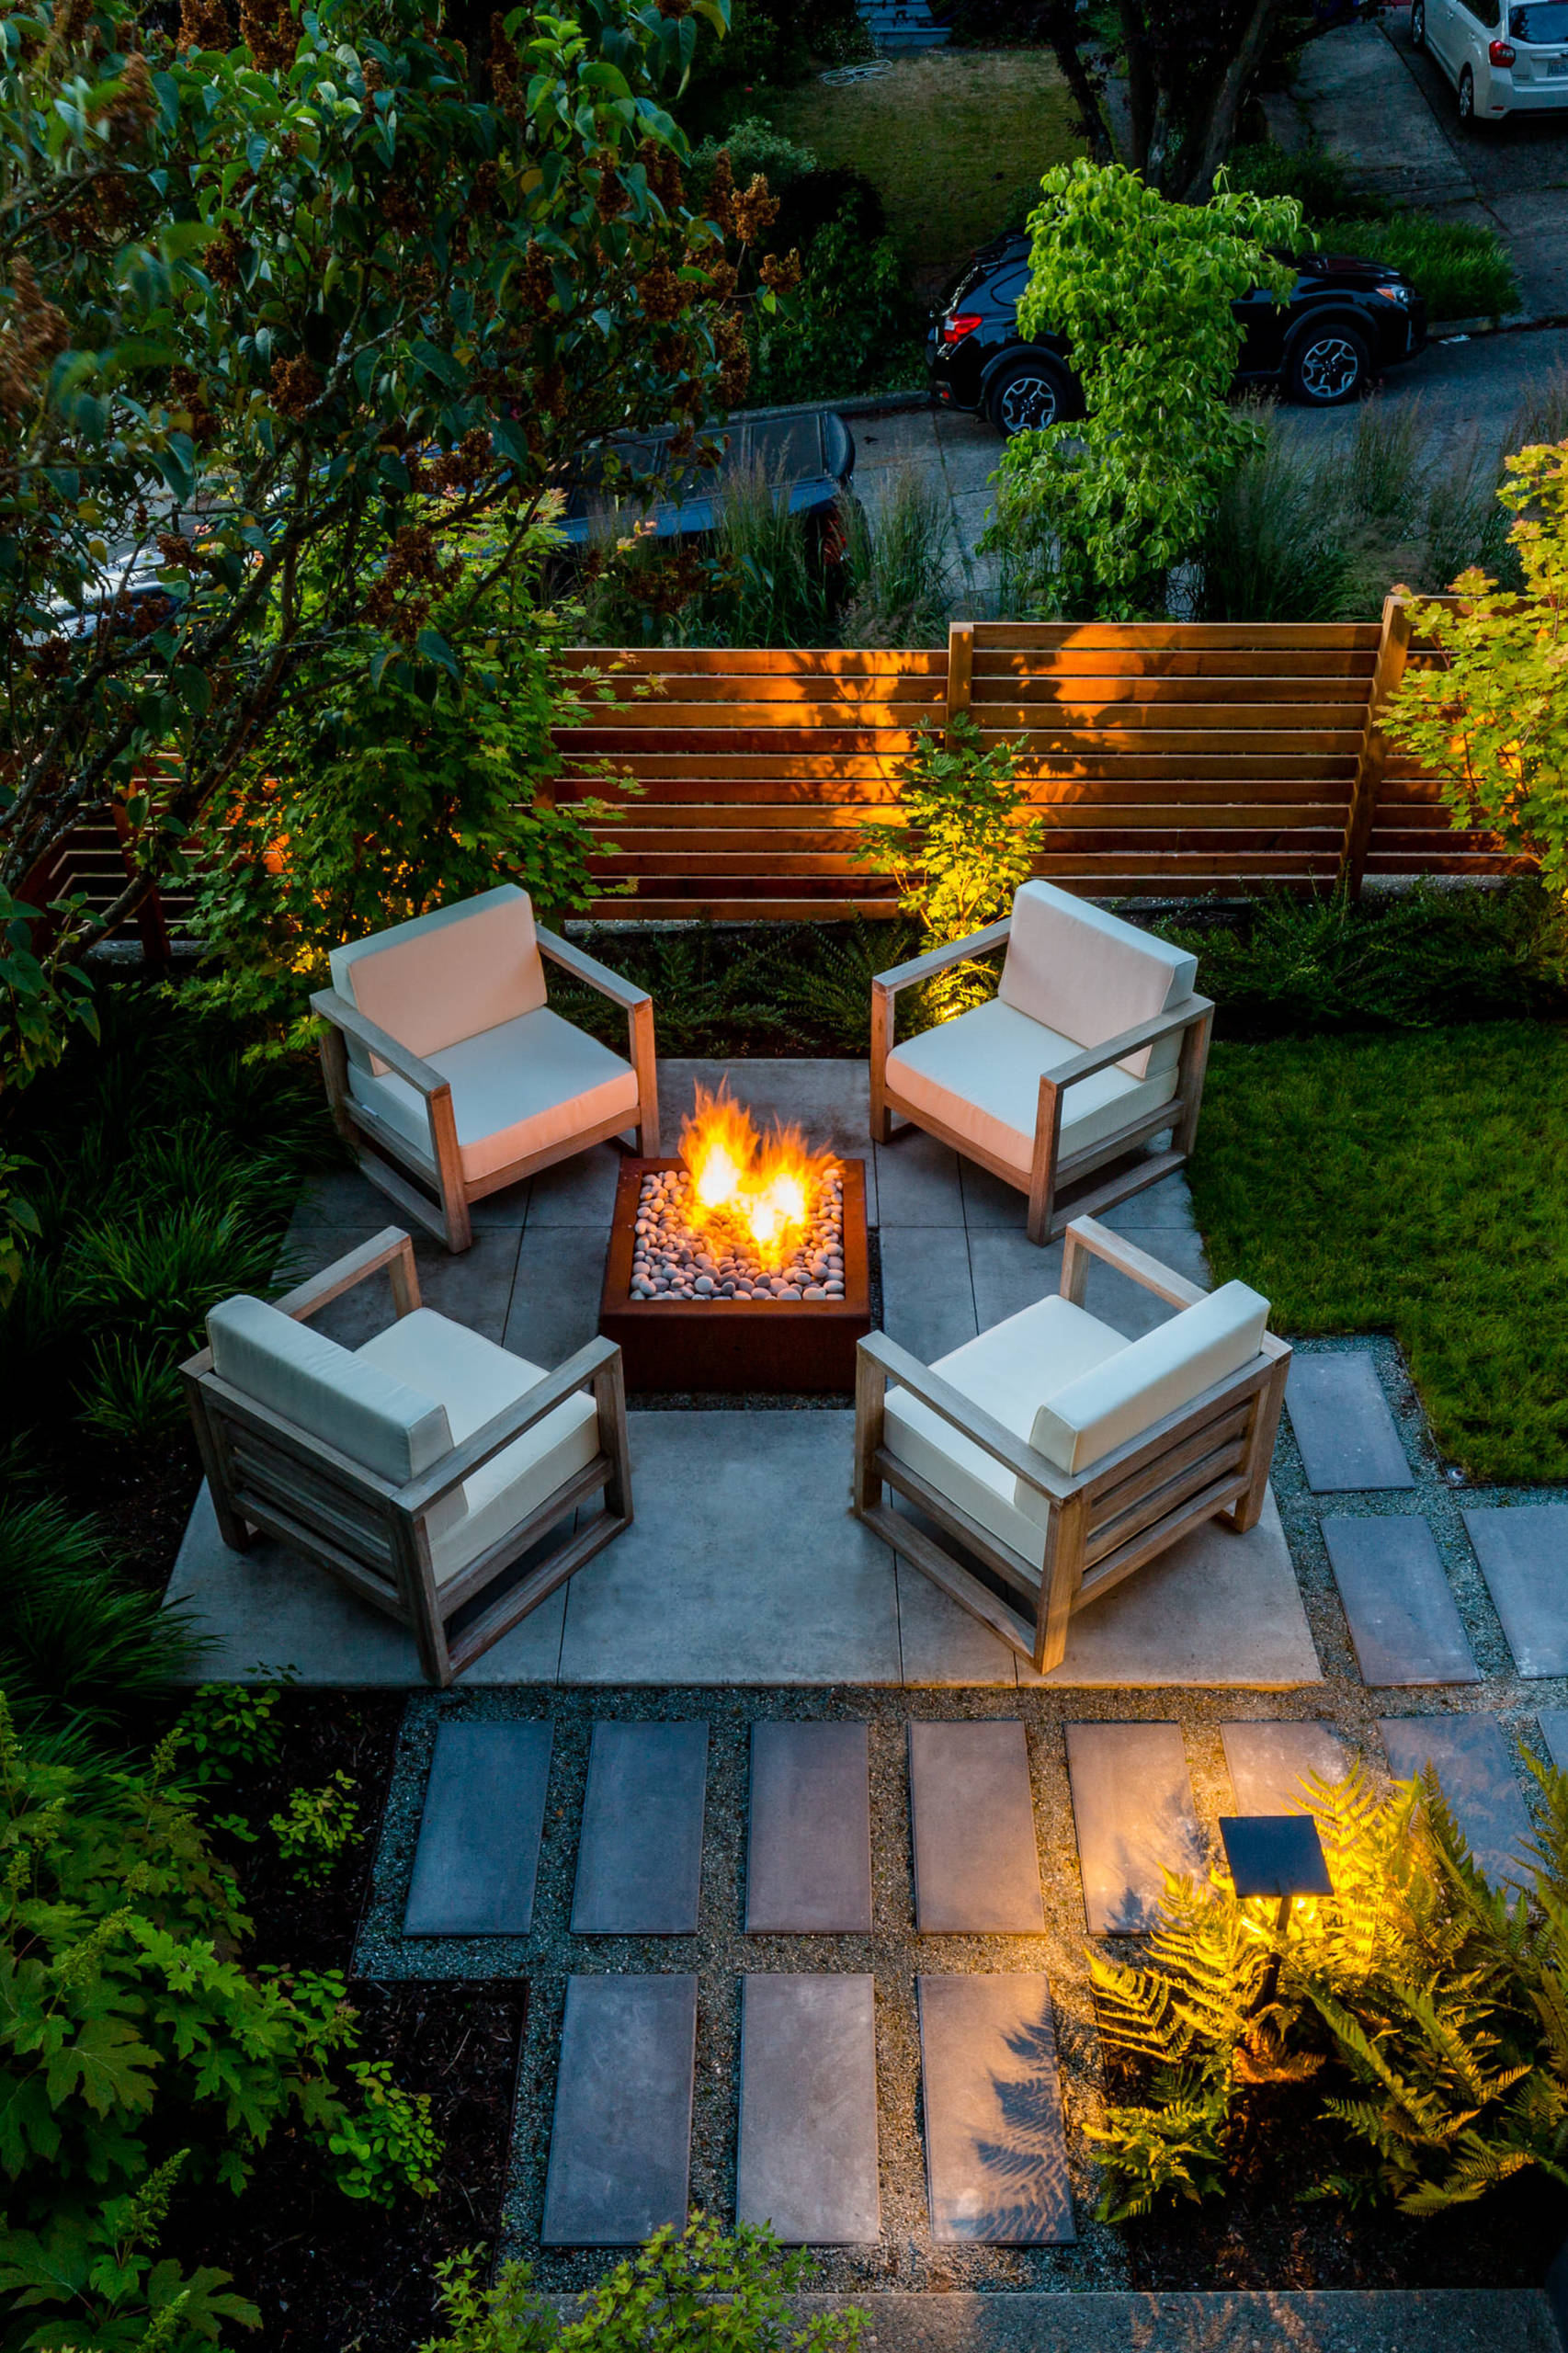 75 Beautiful Backyard Landscaping Pictures & Ideas | Houzz on